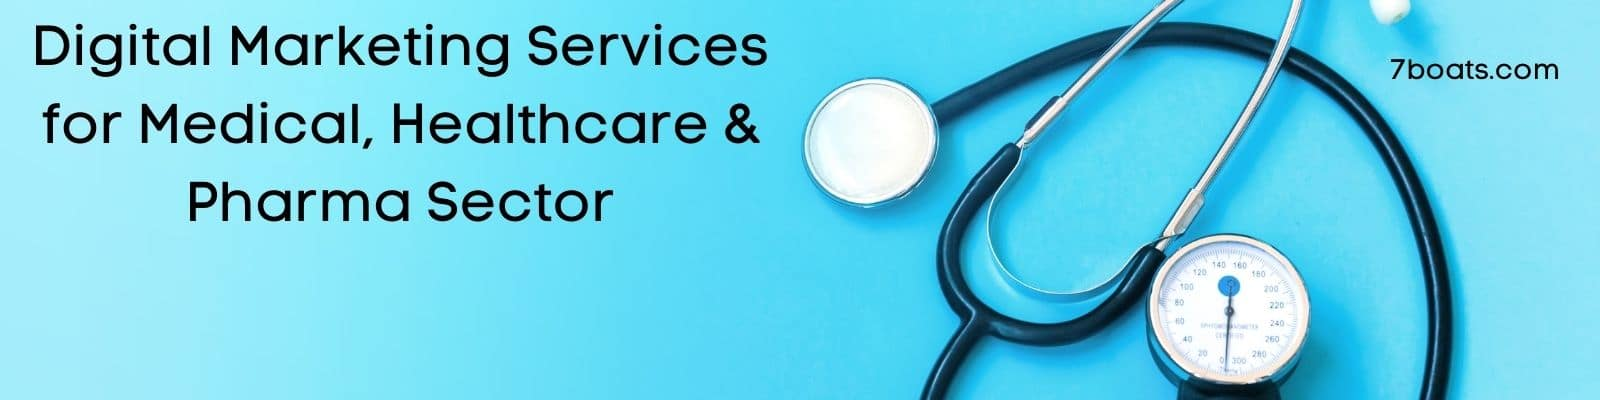 Digital Marketing Services for Medical, Healthcare & Pharma Sector